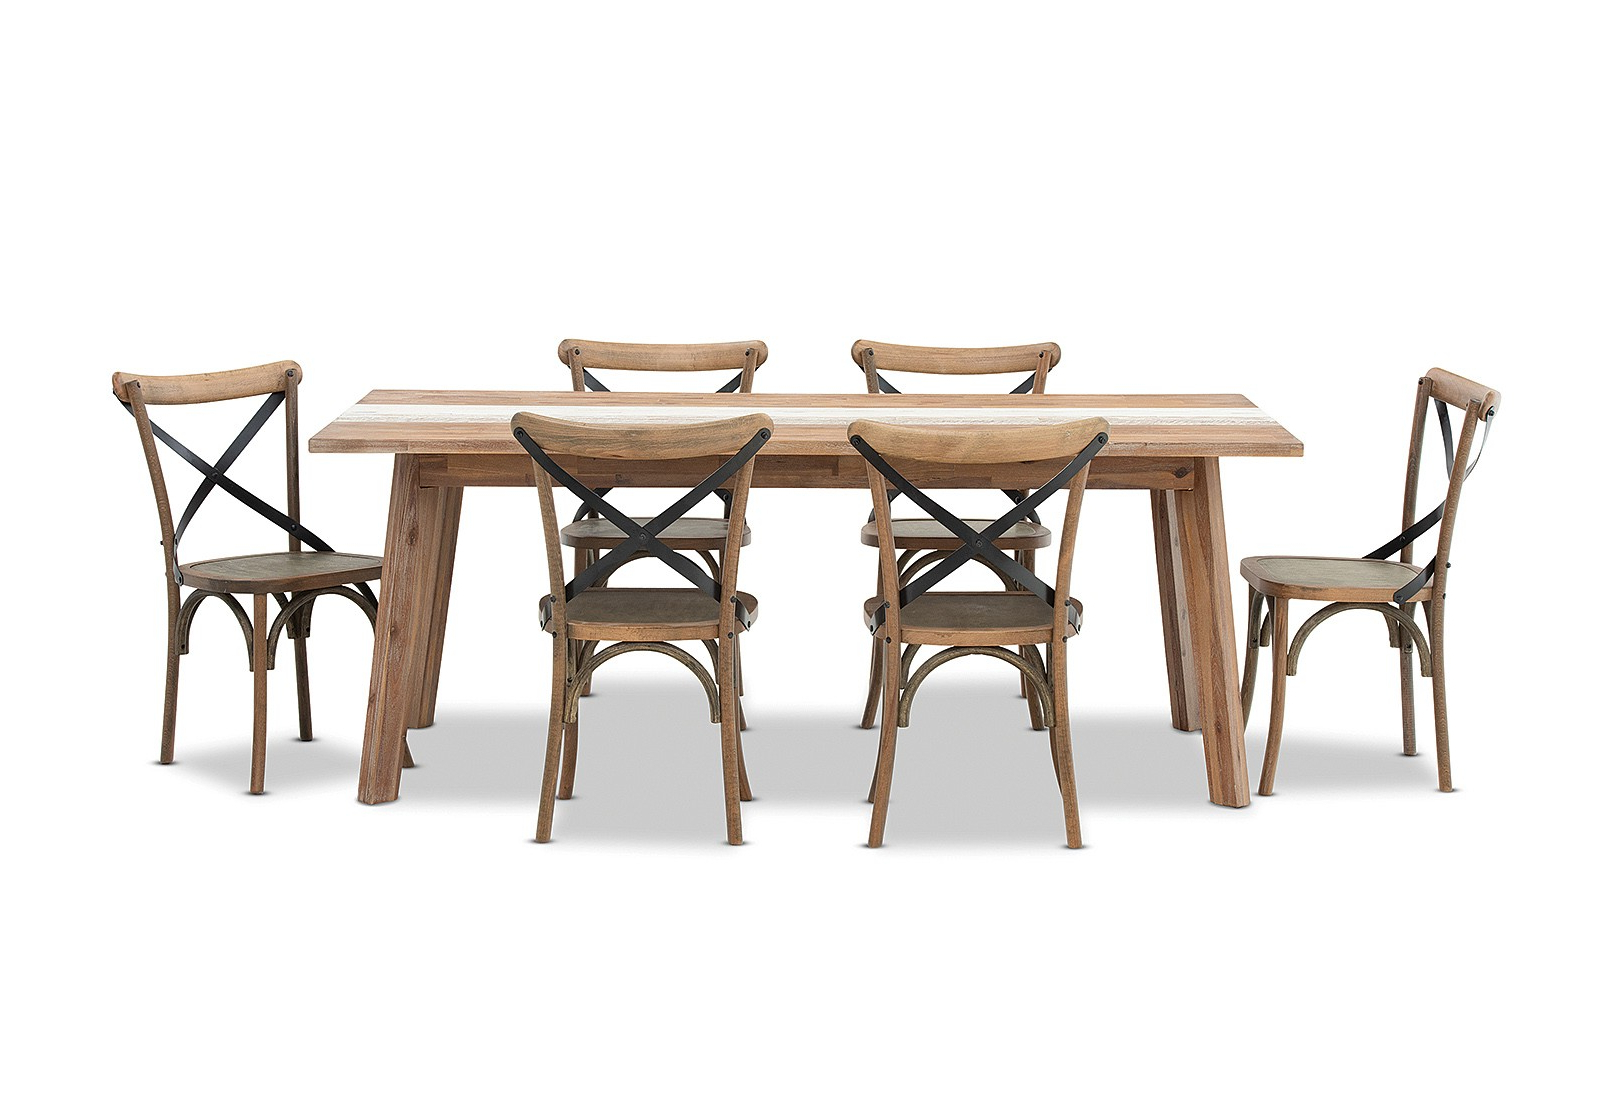 West Hill Family Table 3 Piece Dining Sets With Widely Used 7 Piece Dining Sets (View 24 of 25)